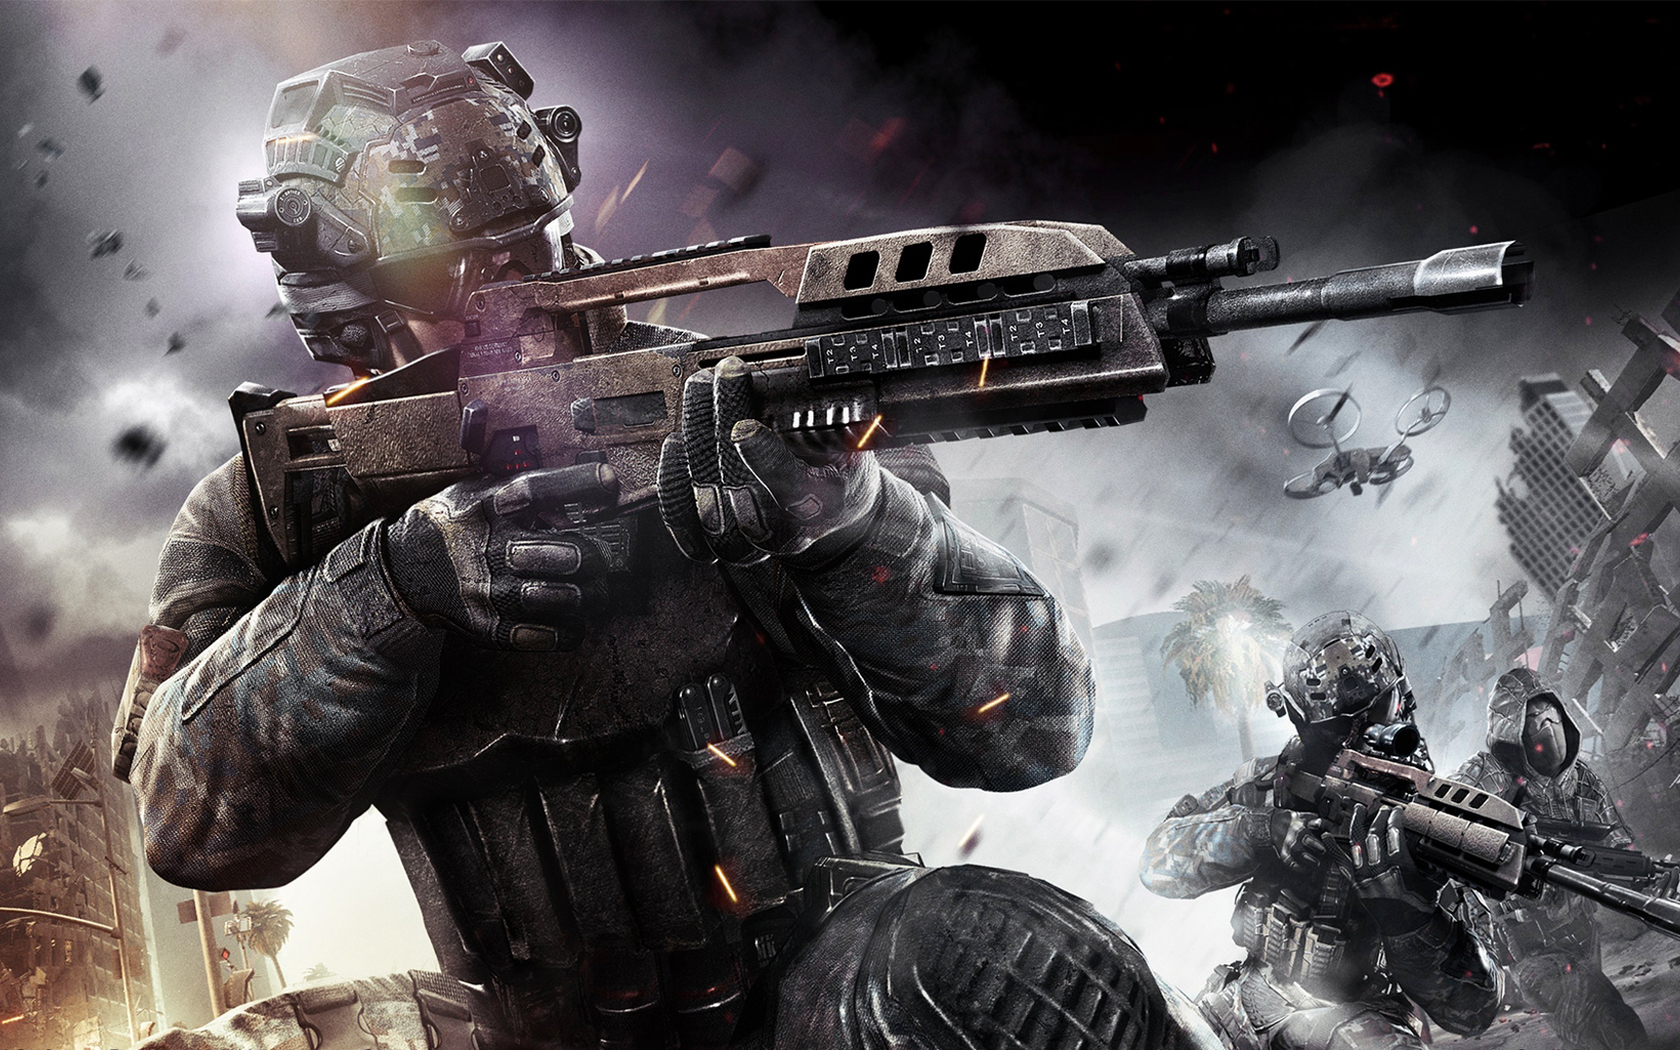 video games guns Call of Duty Call of Duty: Black Ops